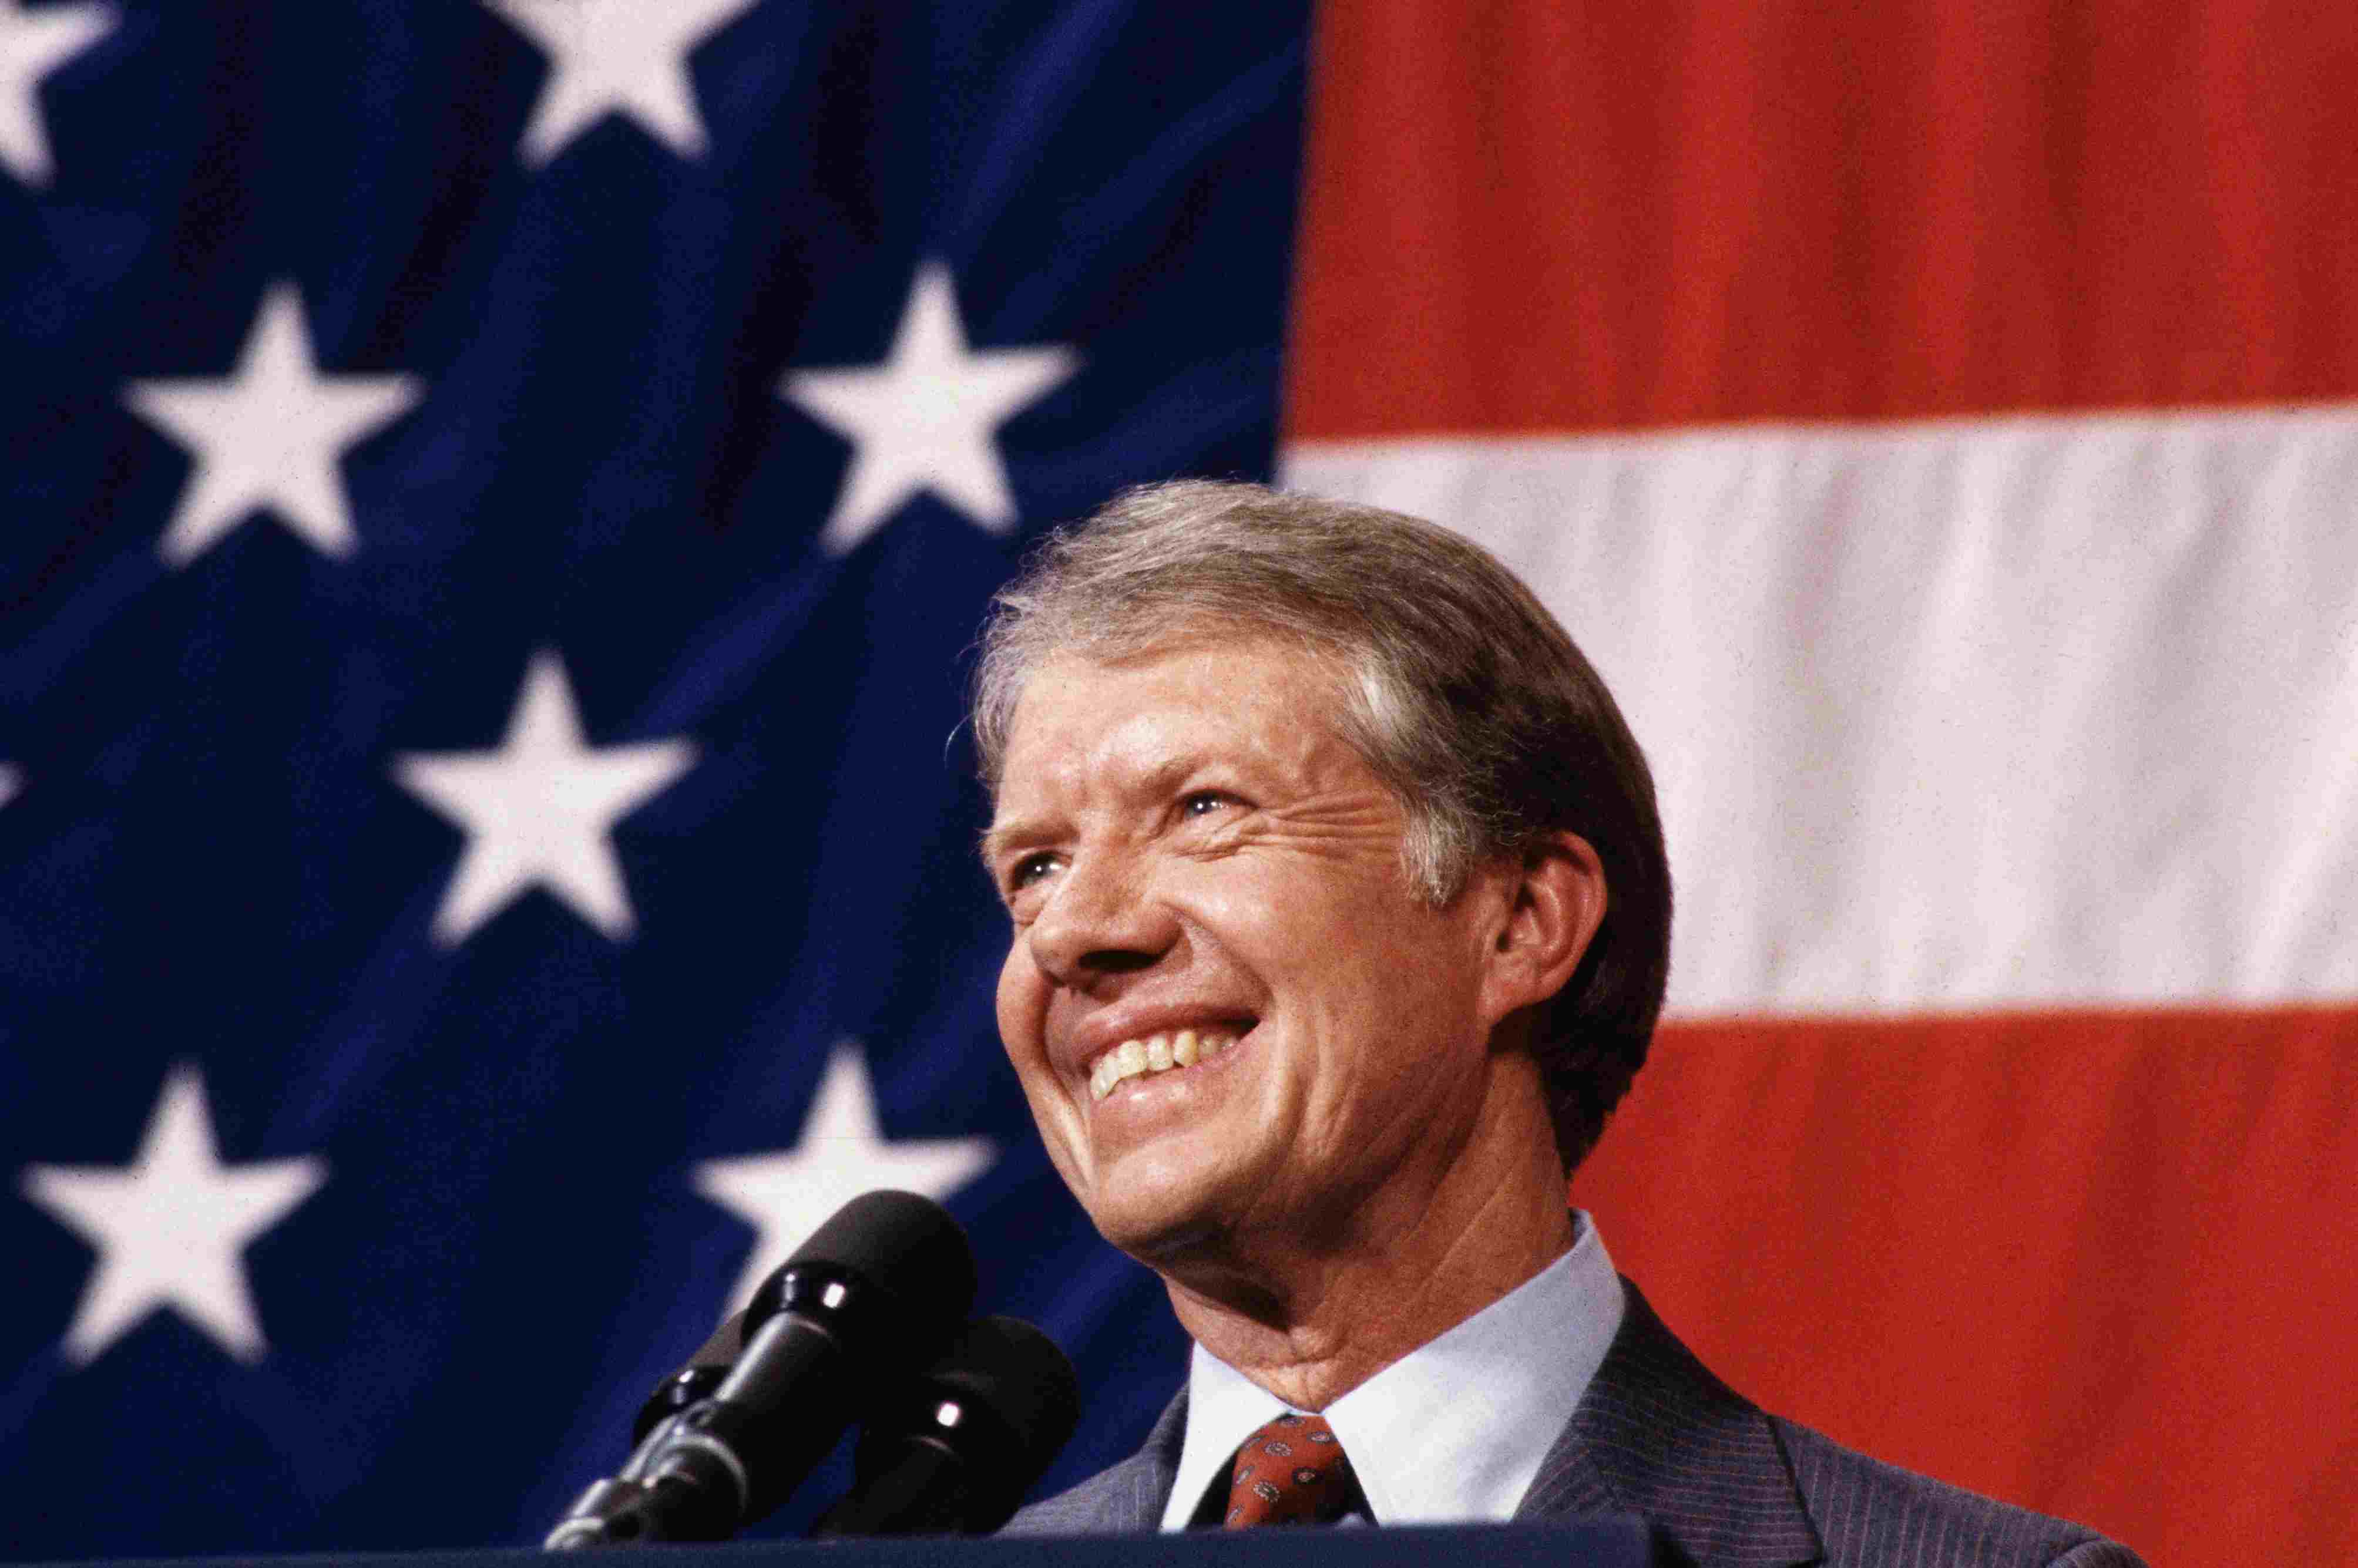 President Jimmy Carter giving a speech with an American flag backdrop